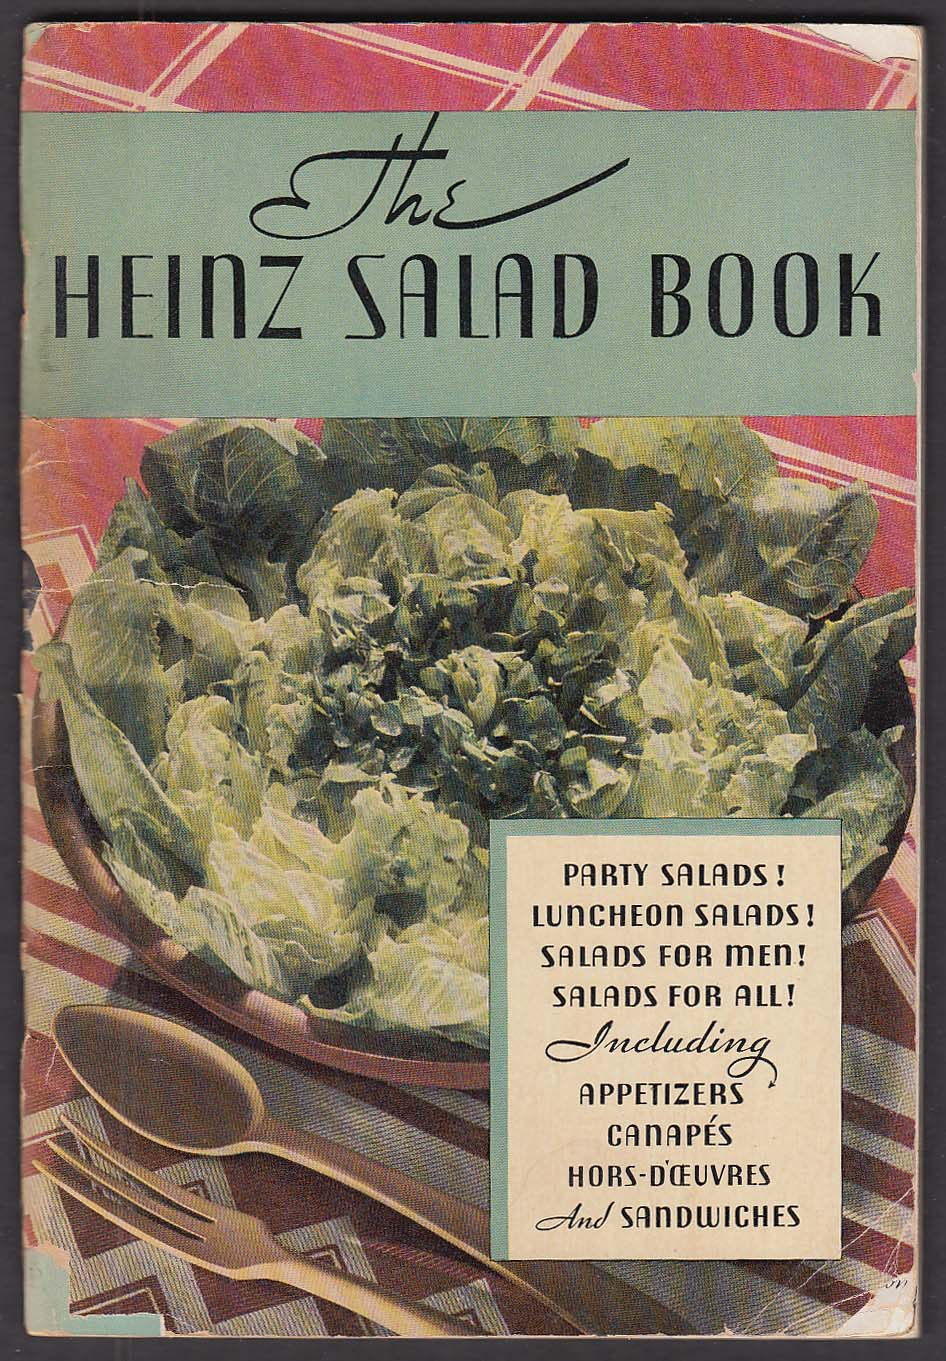 Heinz Salad Book recipes appetizers + 1950s?